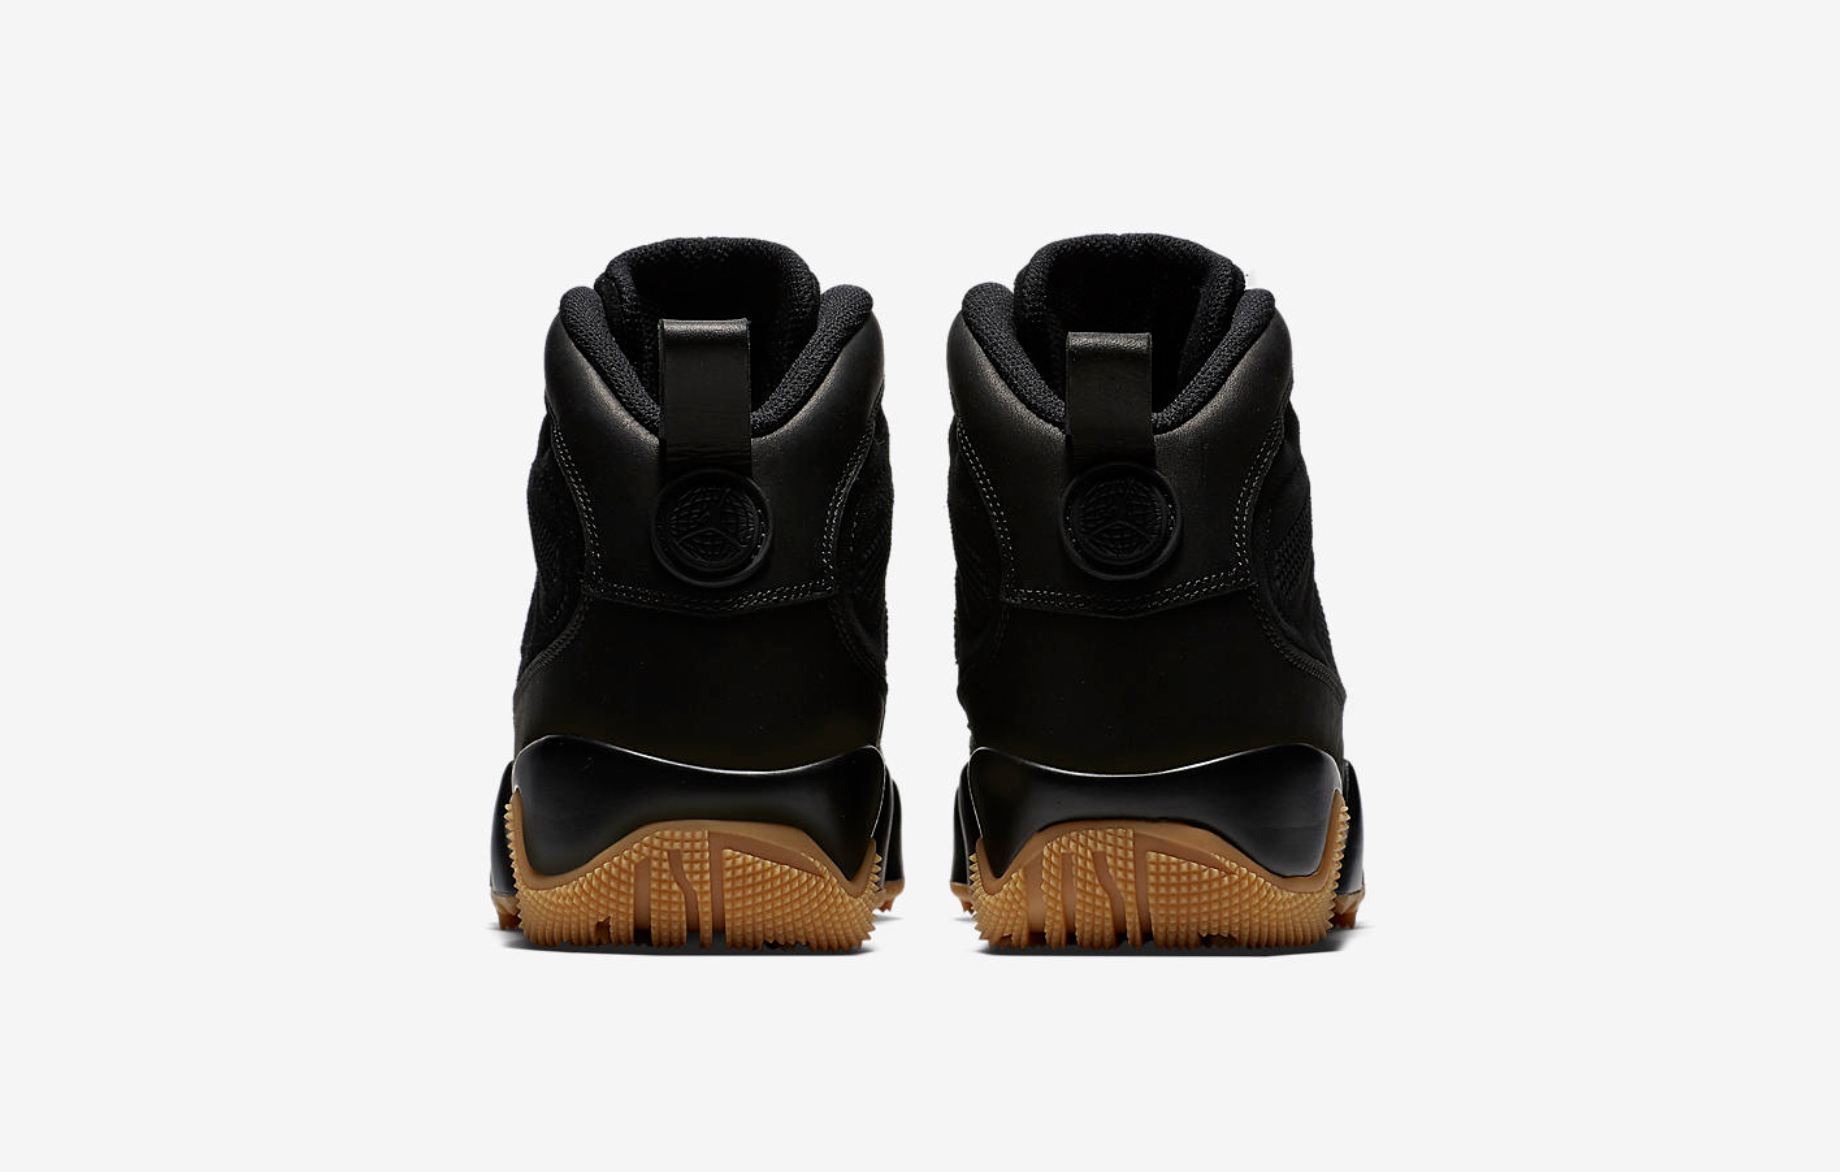 a5583826384 The Air Jordan 9 Boot NRG in Black/Gum Drops Today - WearTesters